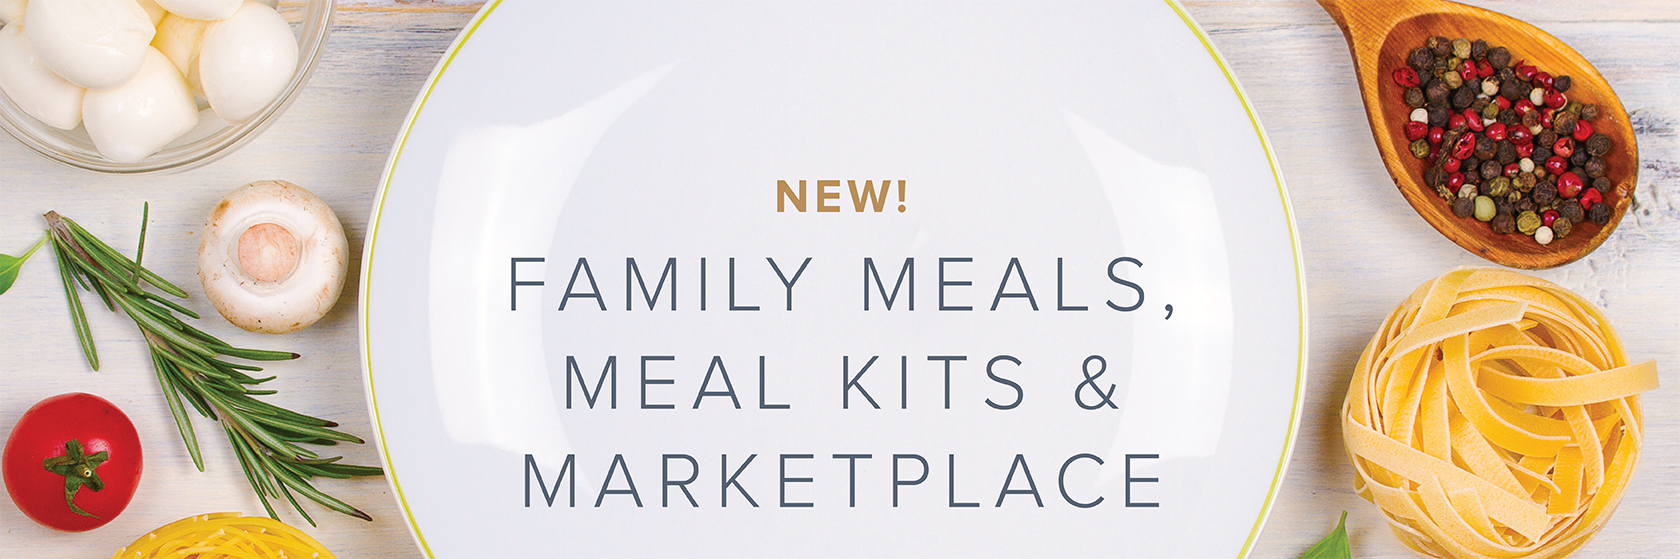 Family Meals, Meal Kits & Marketplace